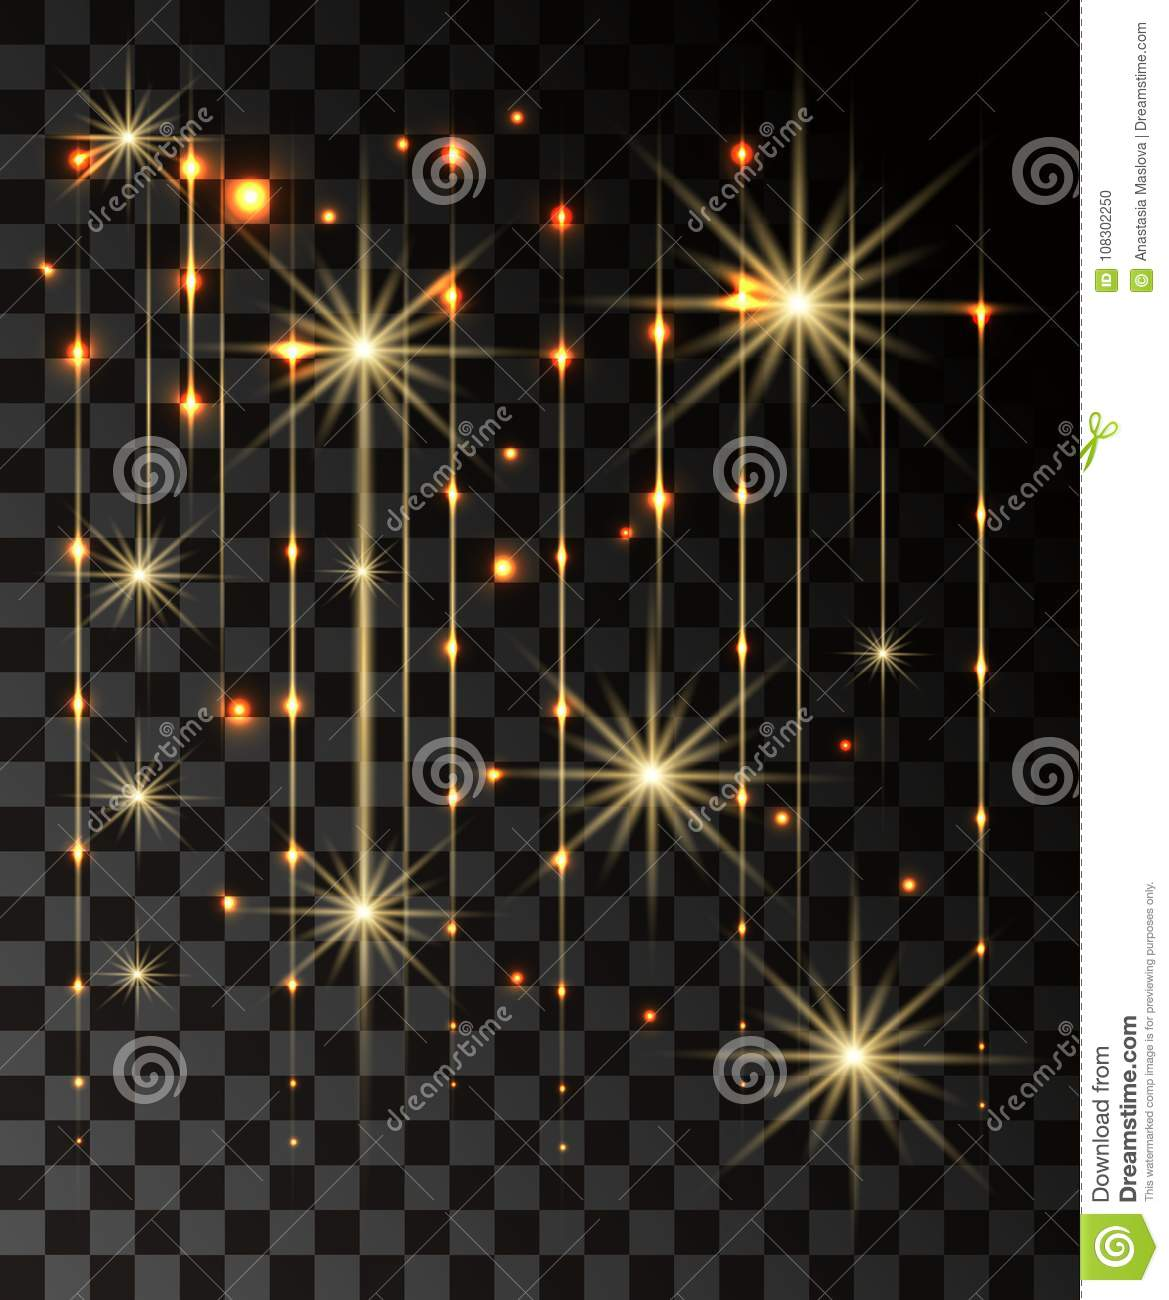 Glow isolated gold transparent effect, lens flare, explosion, glitter, line, sun flash, spark and stars. For illustration template